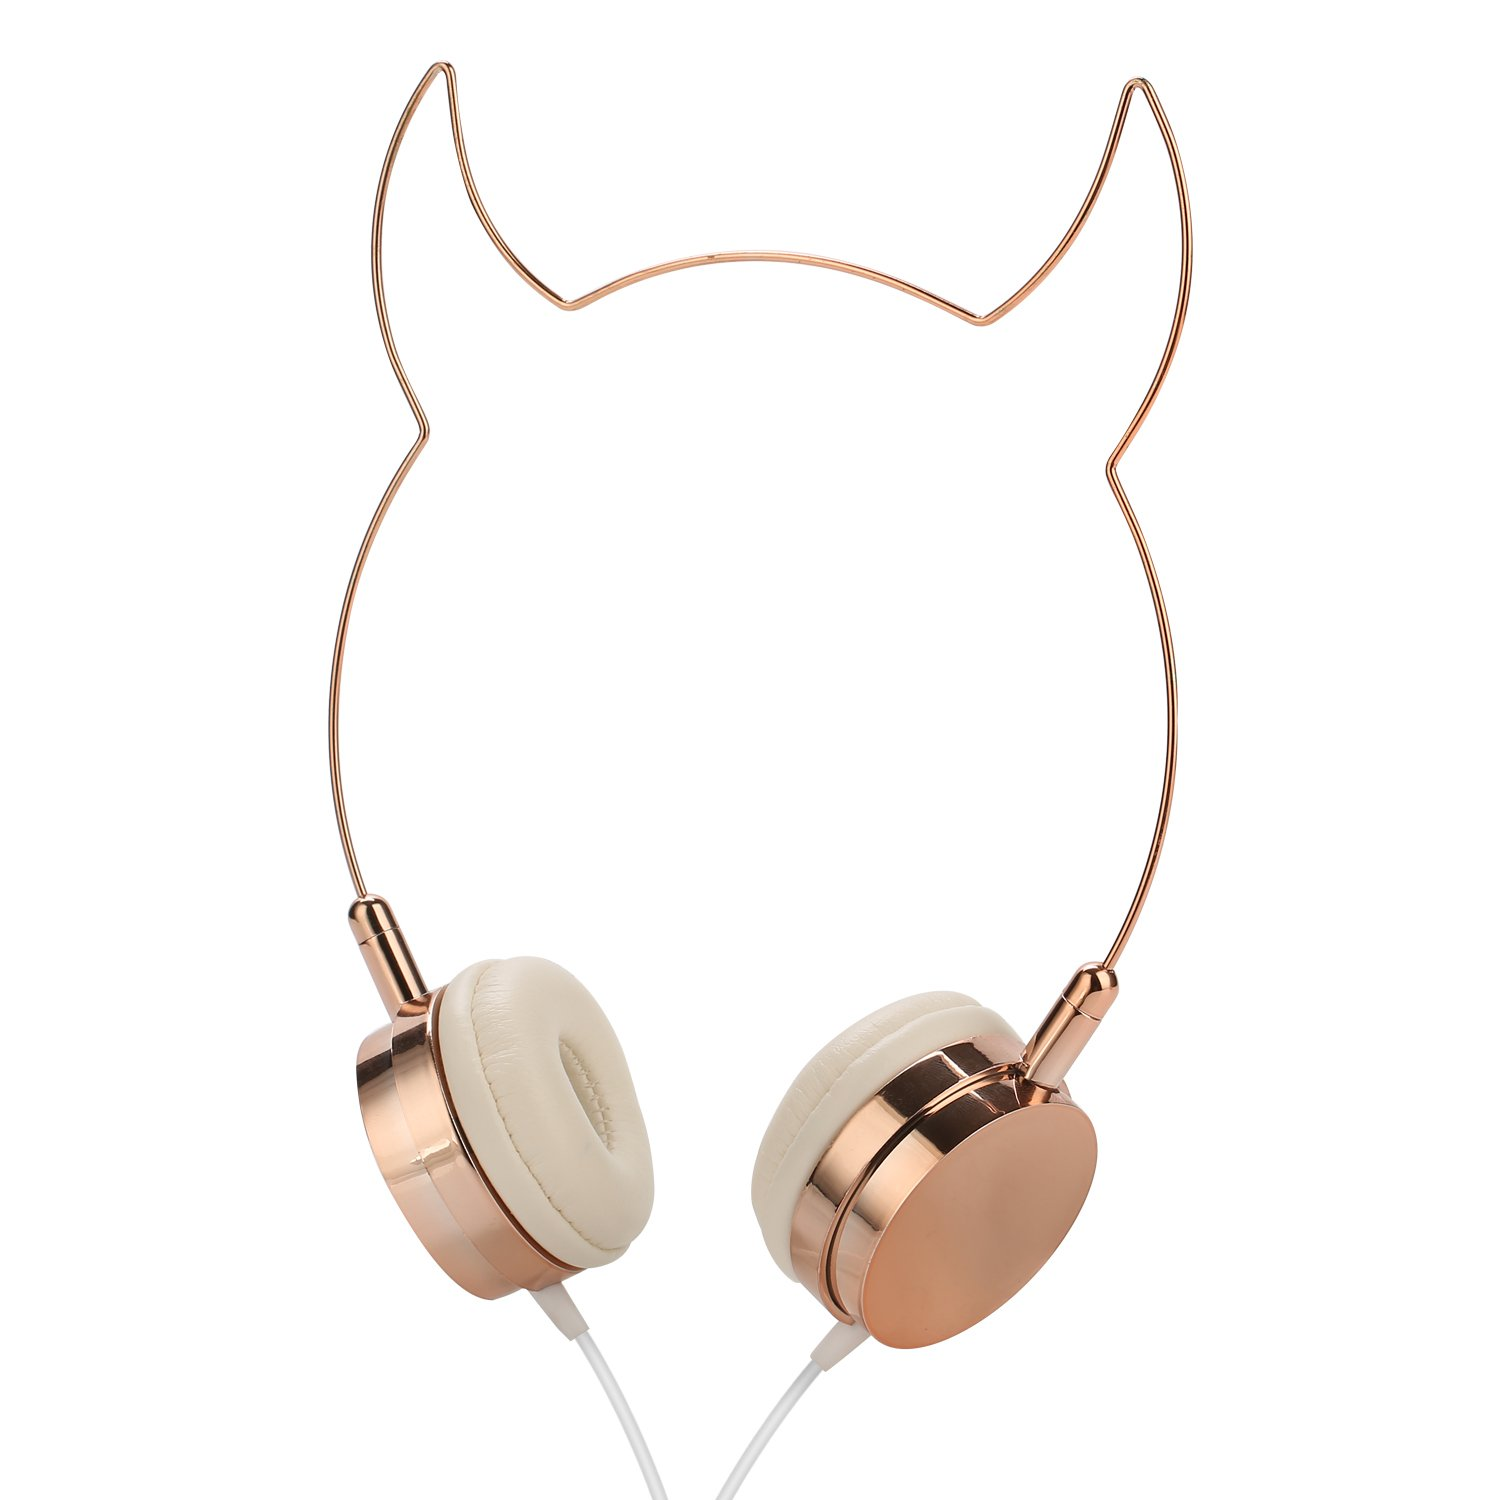 SOMOTOR Wired Headphone, Cool Devil Ox Ear Cute Headphone On Ear Rose Gold